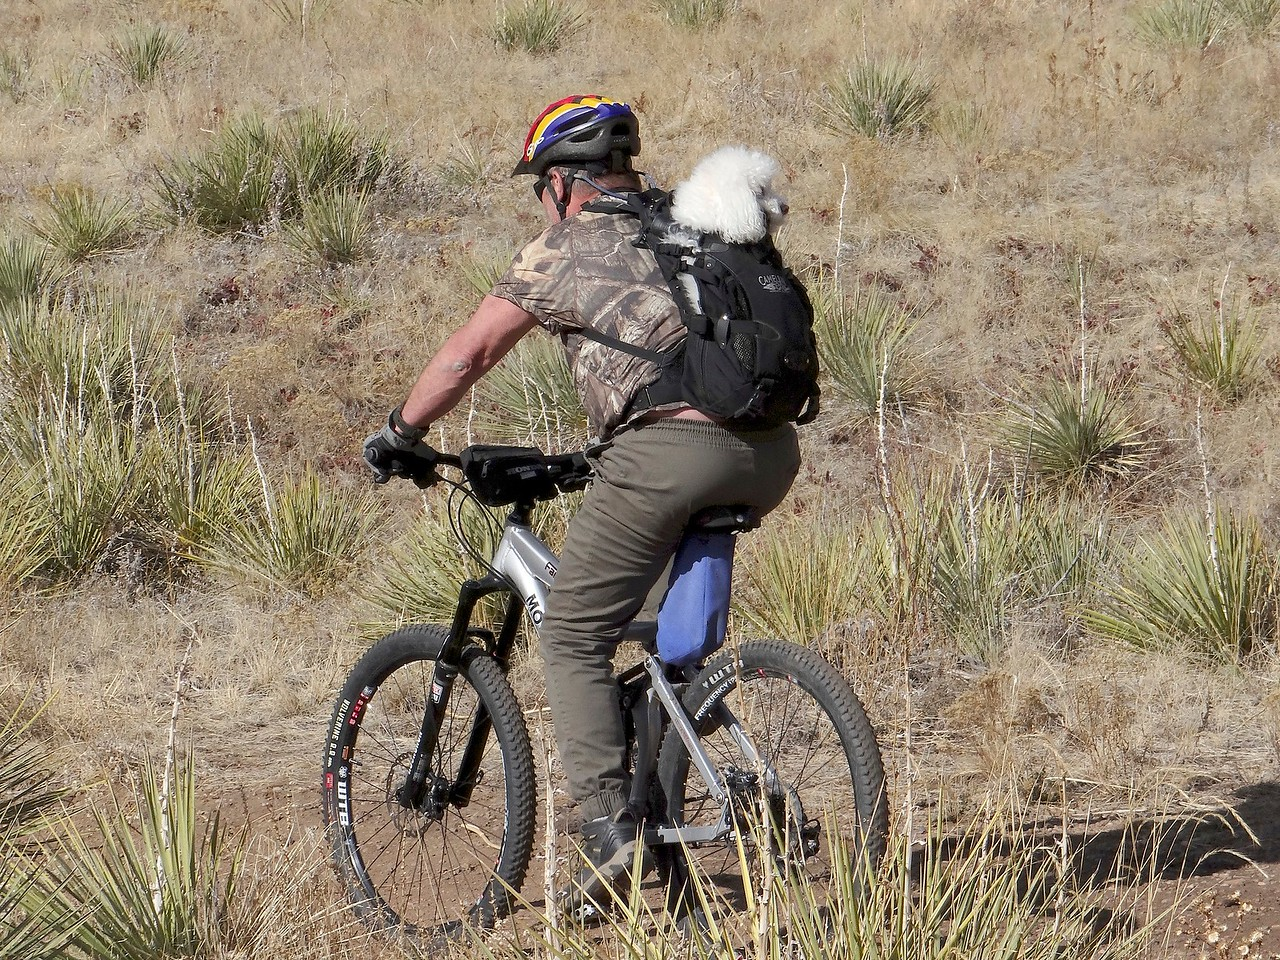 Says his poodle loves to go on bike rides. She was perfectly content!